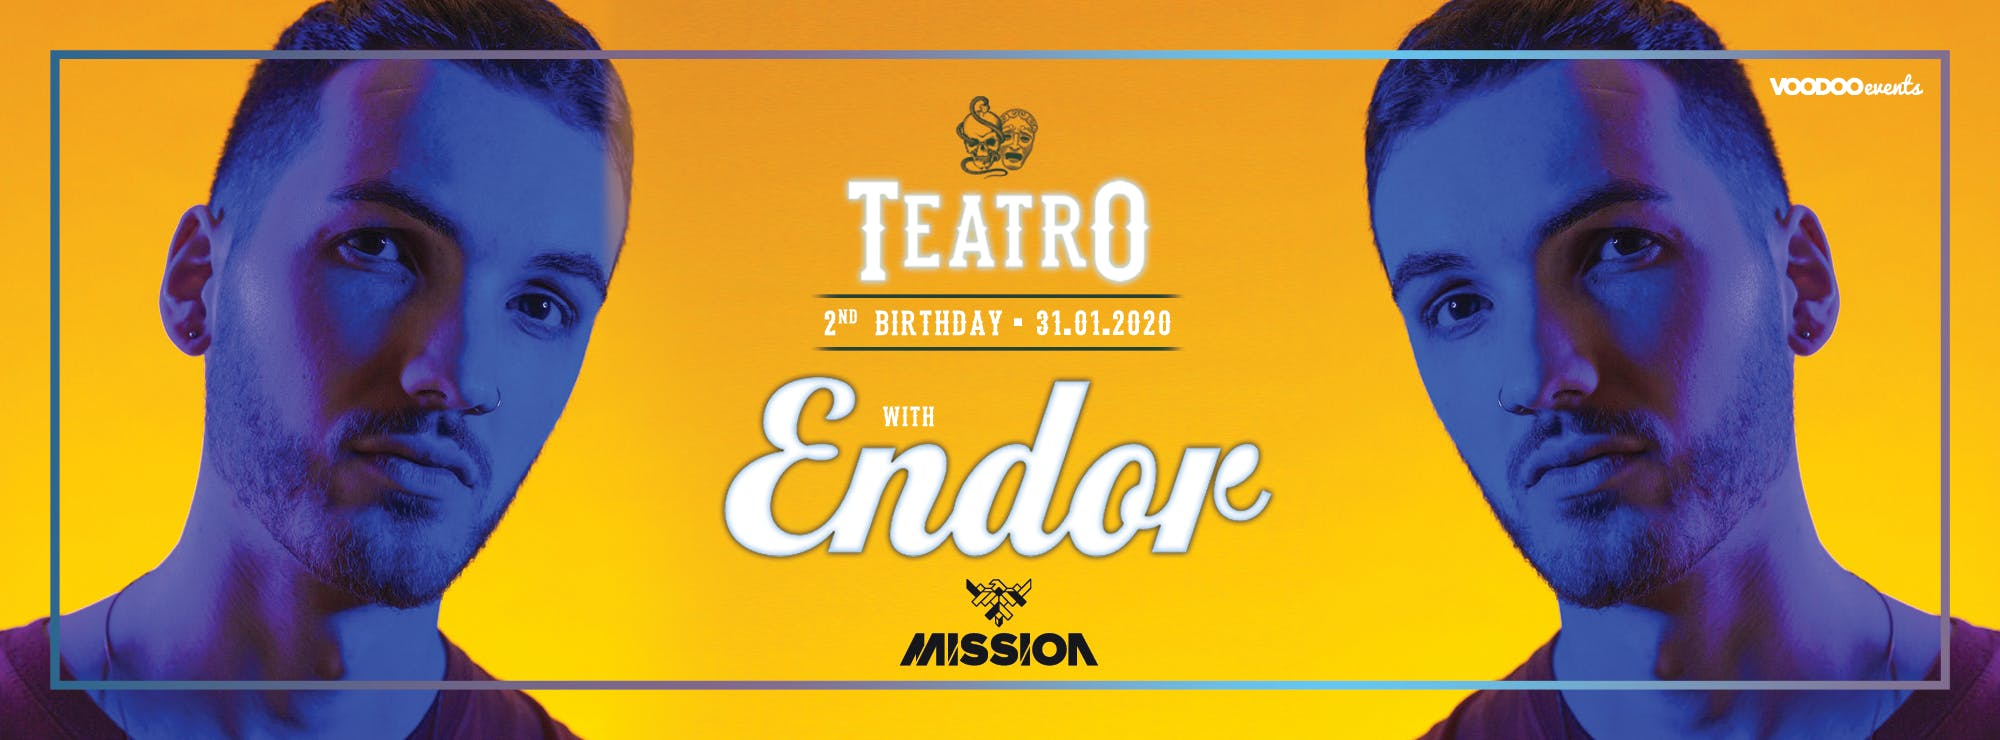 Teatro 2nd Birthday ft ENDOR